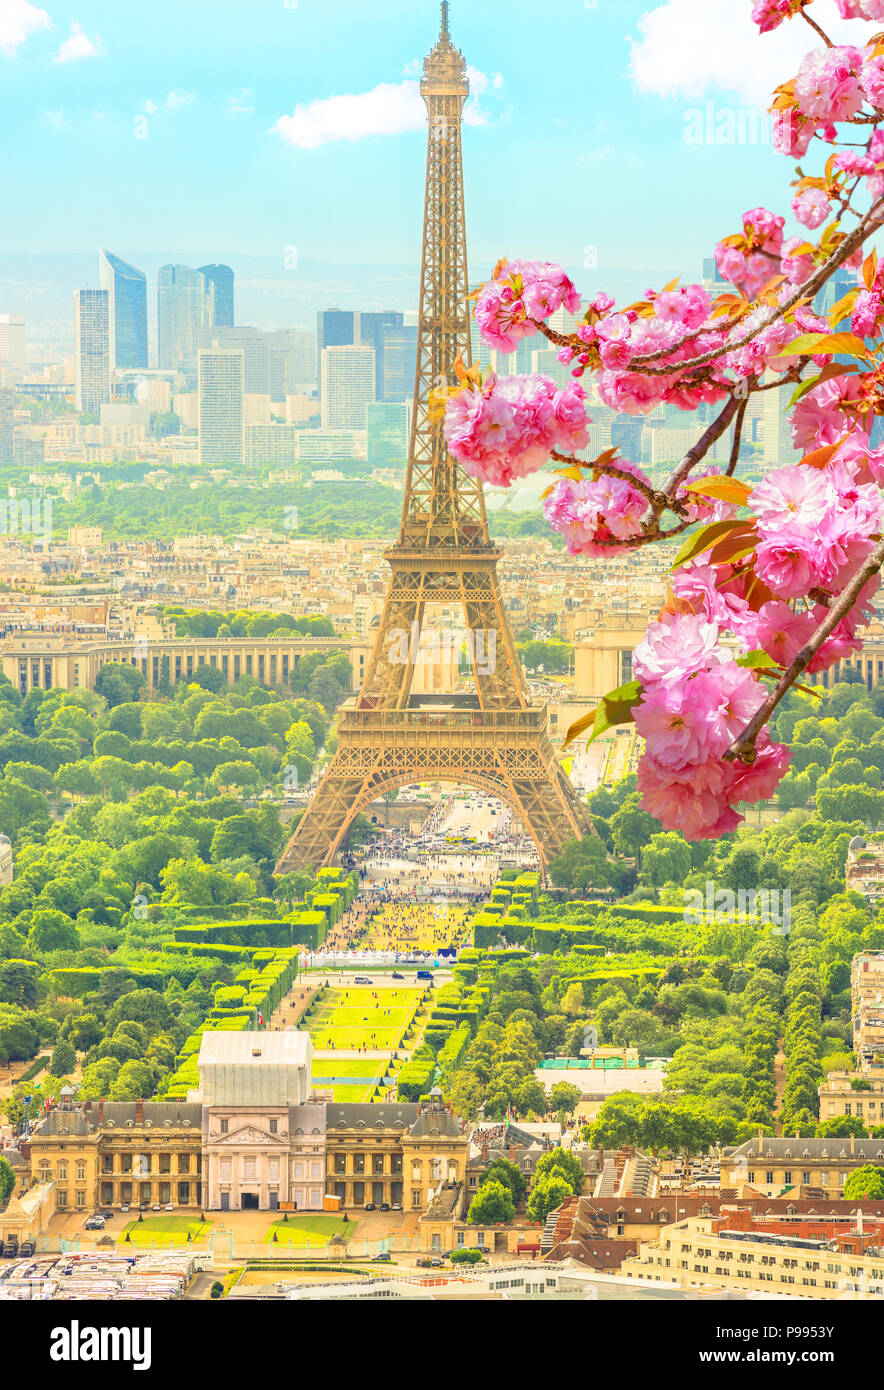 Cherry blossom branch in foreground and cityscape skyline of Paris with Eiffel Tower on background. Seasonal picturesque background. Scenic wallpaper with Eiffel Tower. Vertical shot. - Stock Image